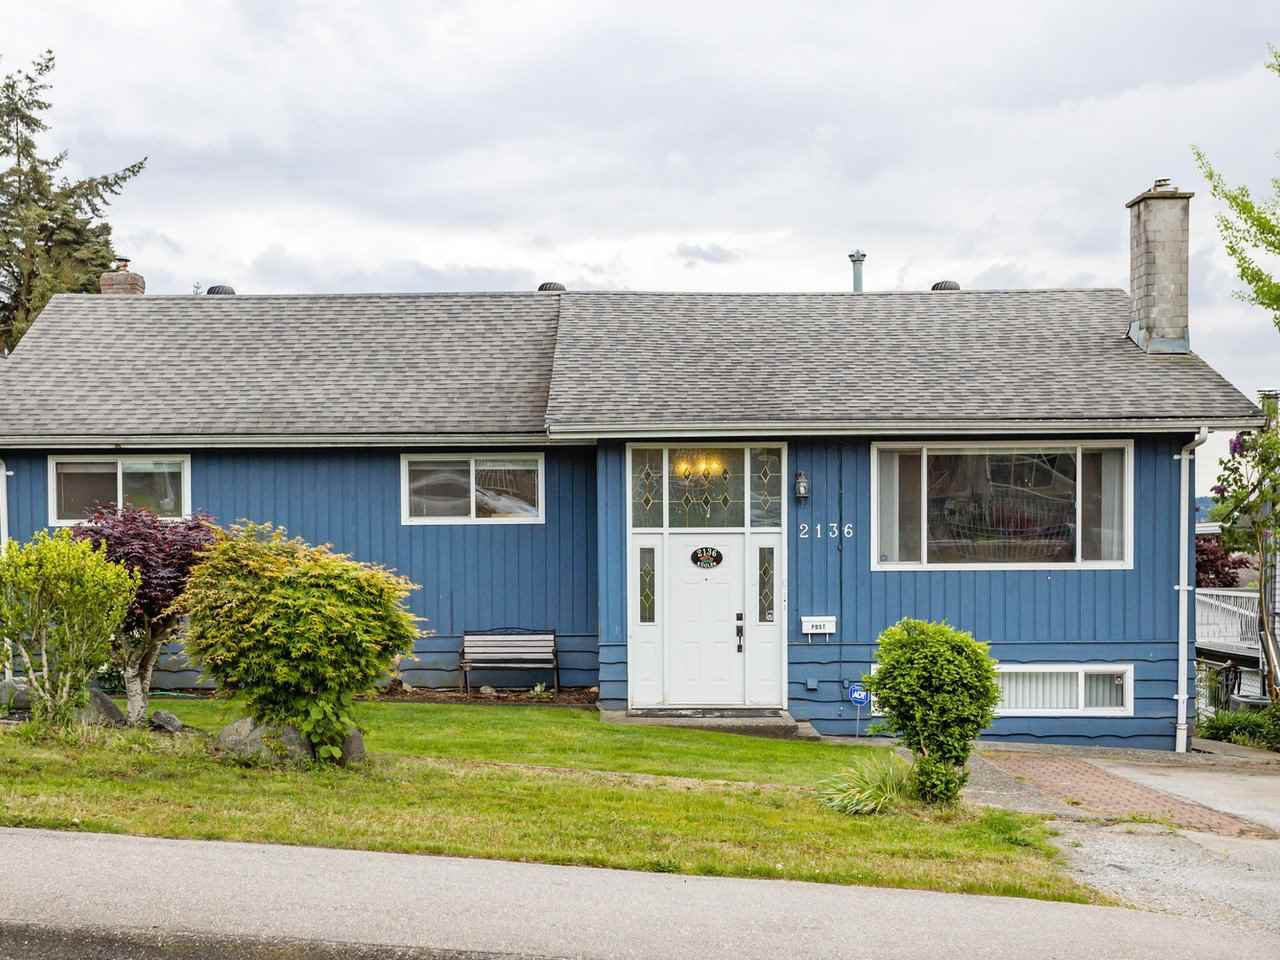 """Main Photo: 2136 KUGLER Avenue in Coquitlam: Central Coquitlam House for sale in """"Central Coquitlam"""" : MLS®# R2457039"""